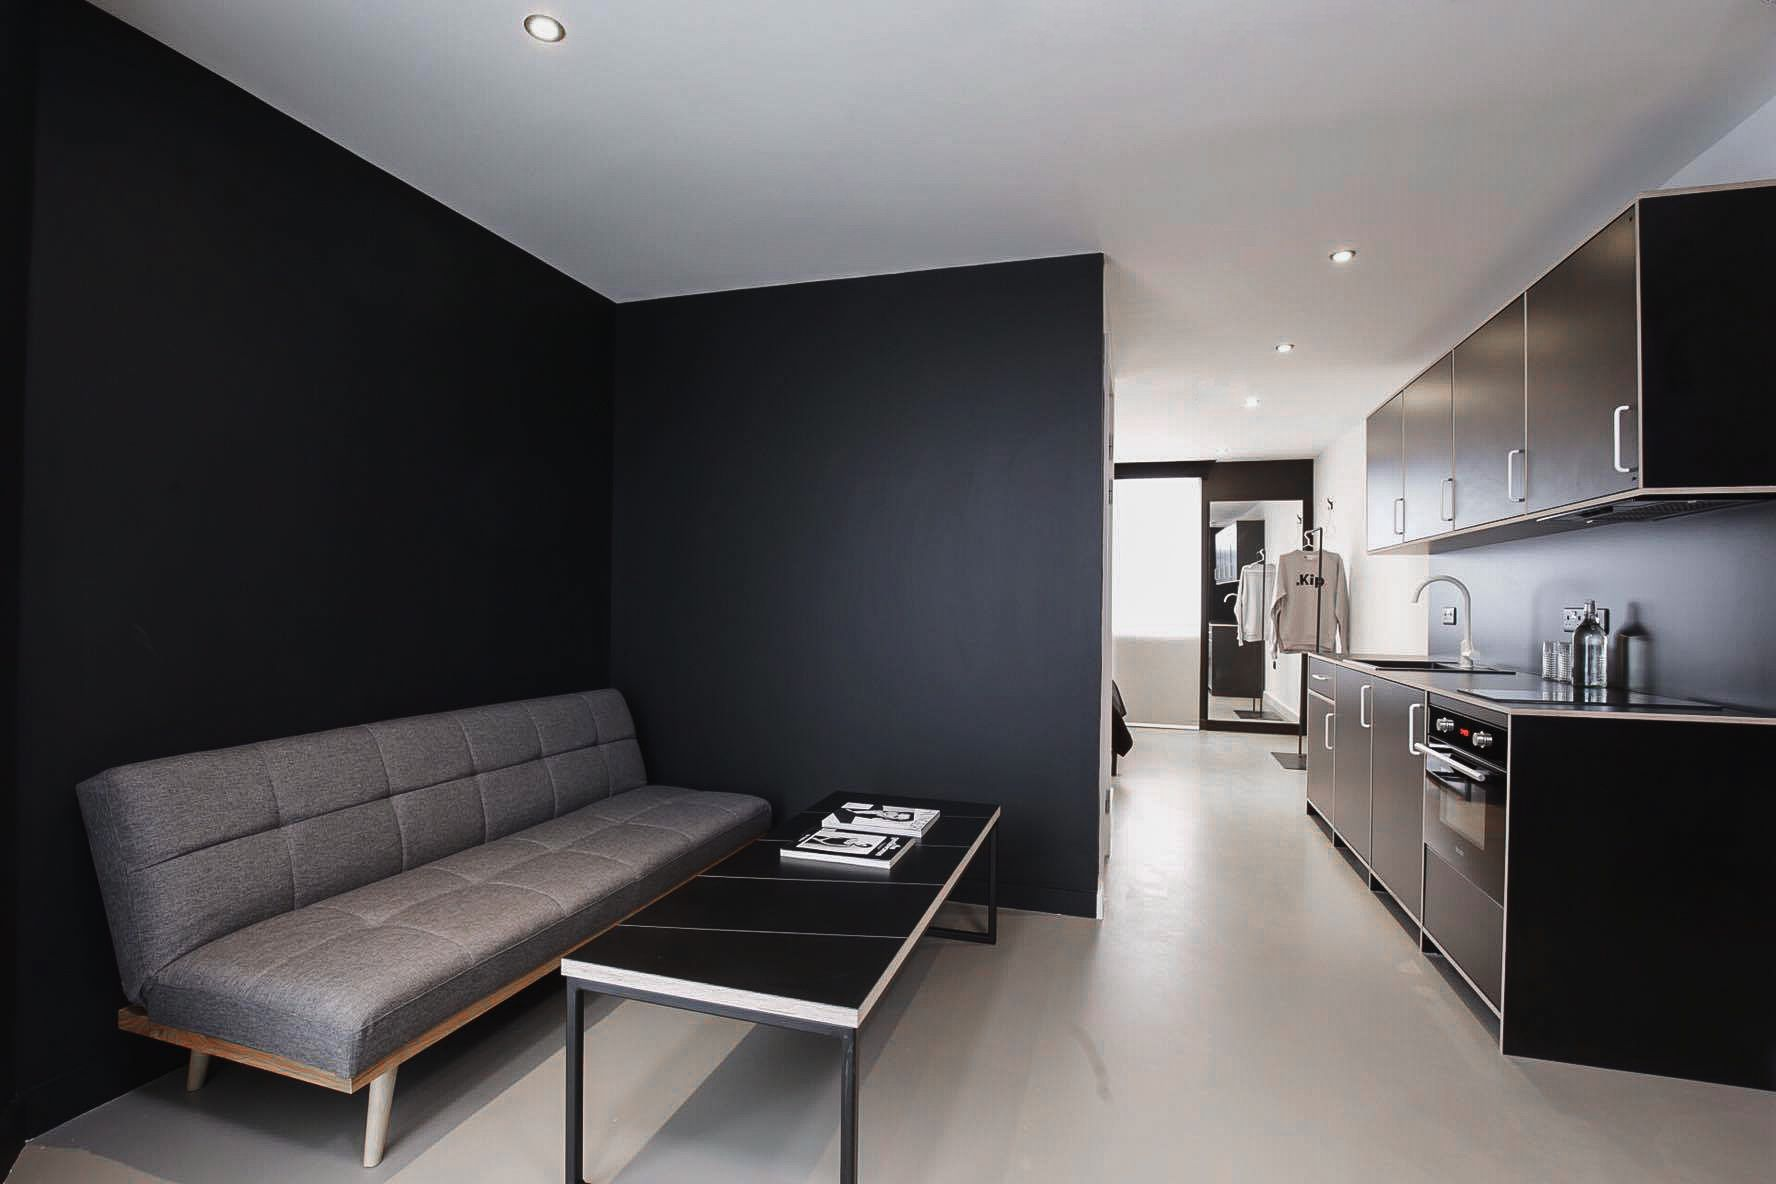 Hotels With Kitchen Ikea Chair Minimalist Monochrome Studio Room In London Hotel King Size Bed And Lounge